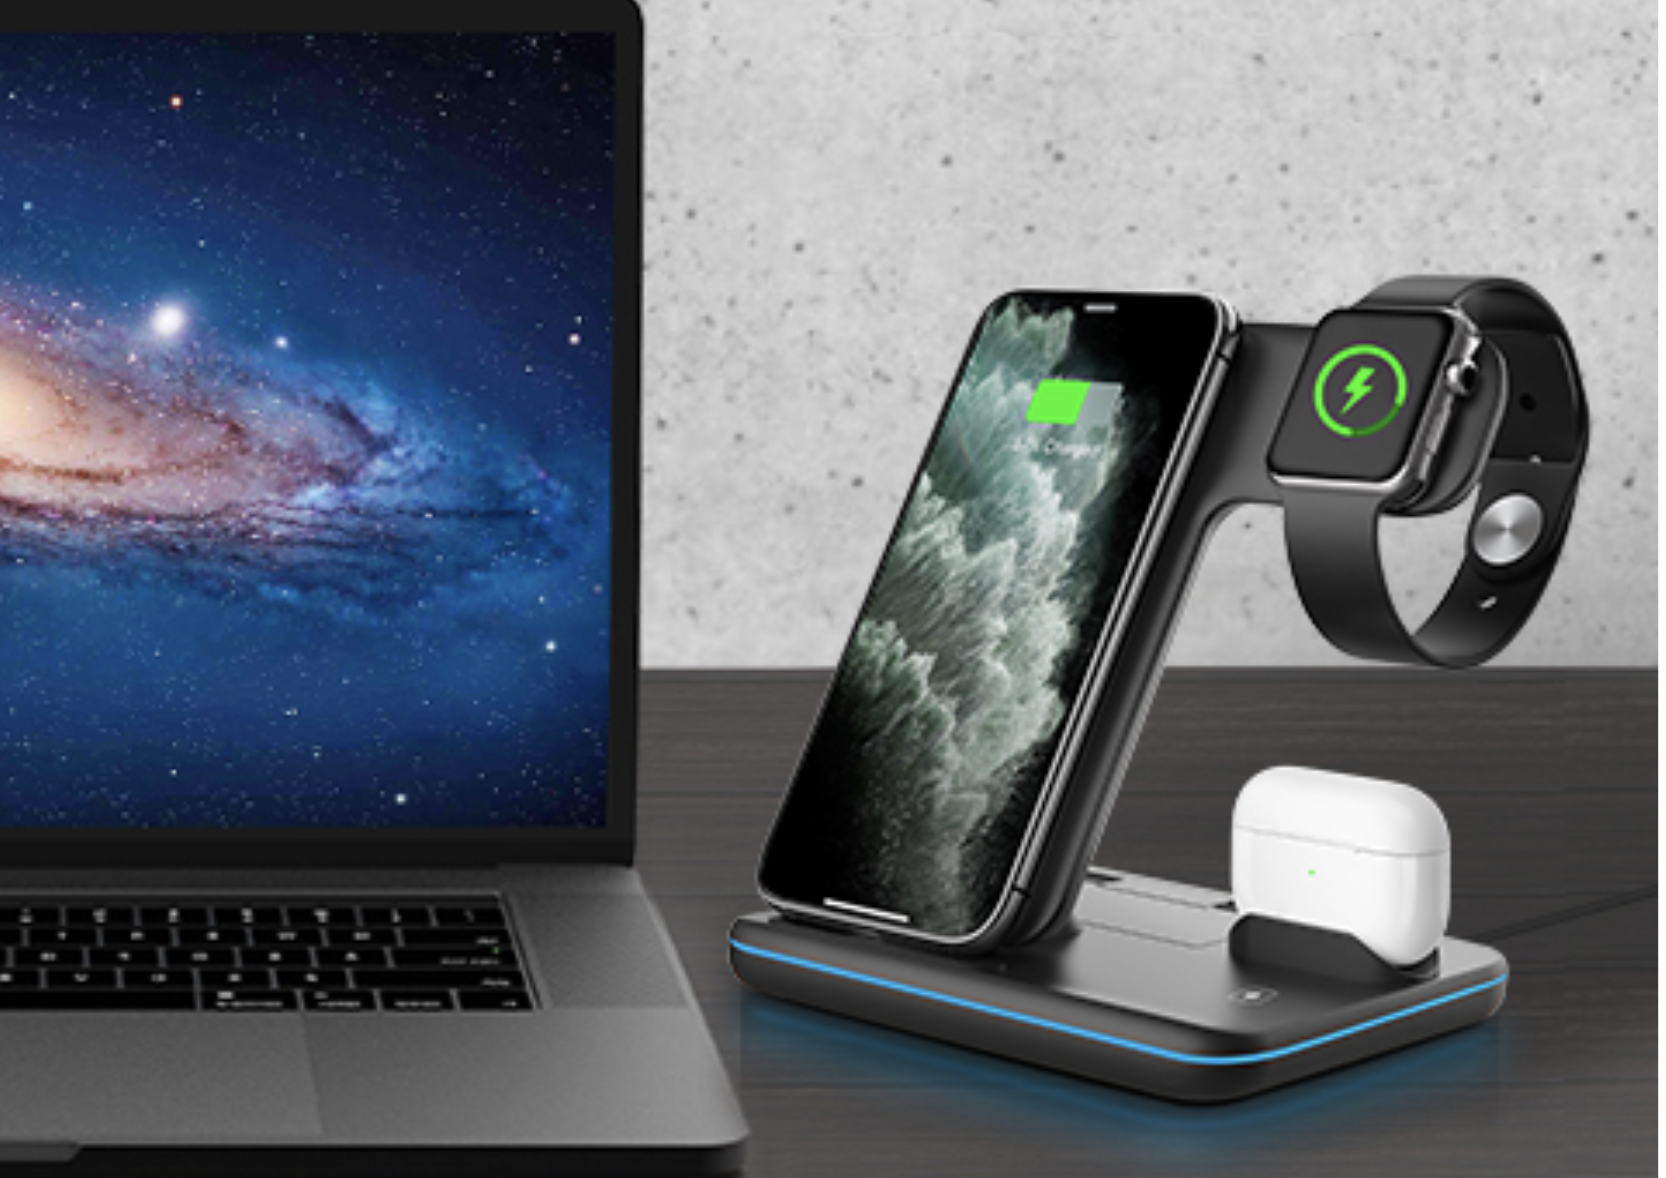 A black charging station on a desk wirelessly charging an iPhone, AirPods, and Apple Watch